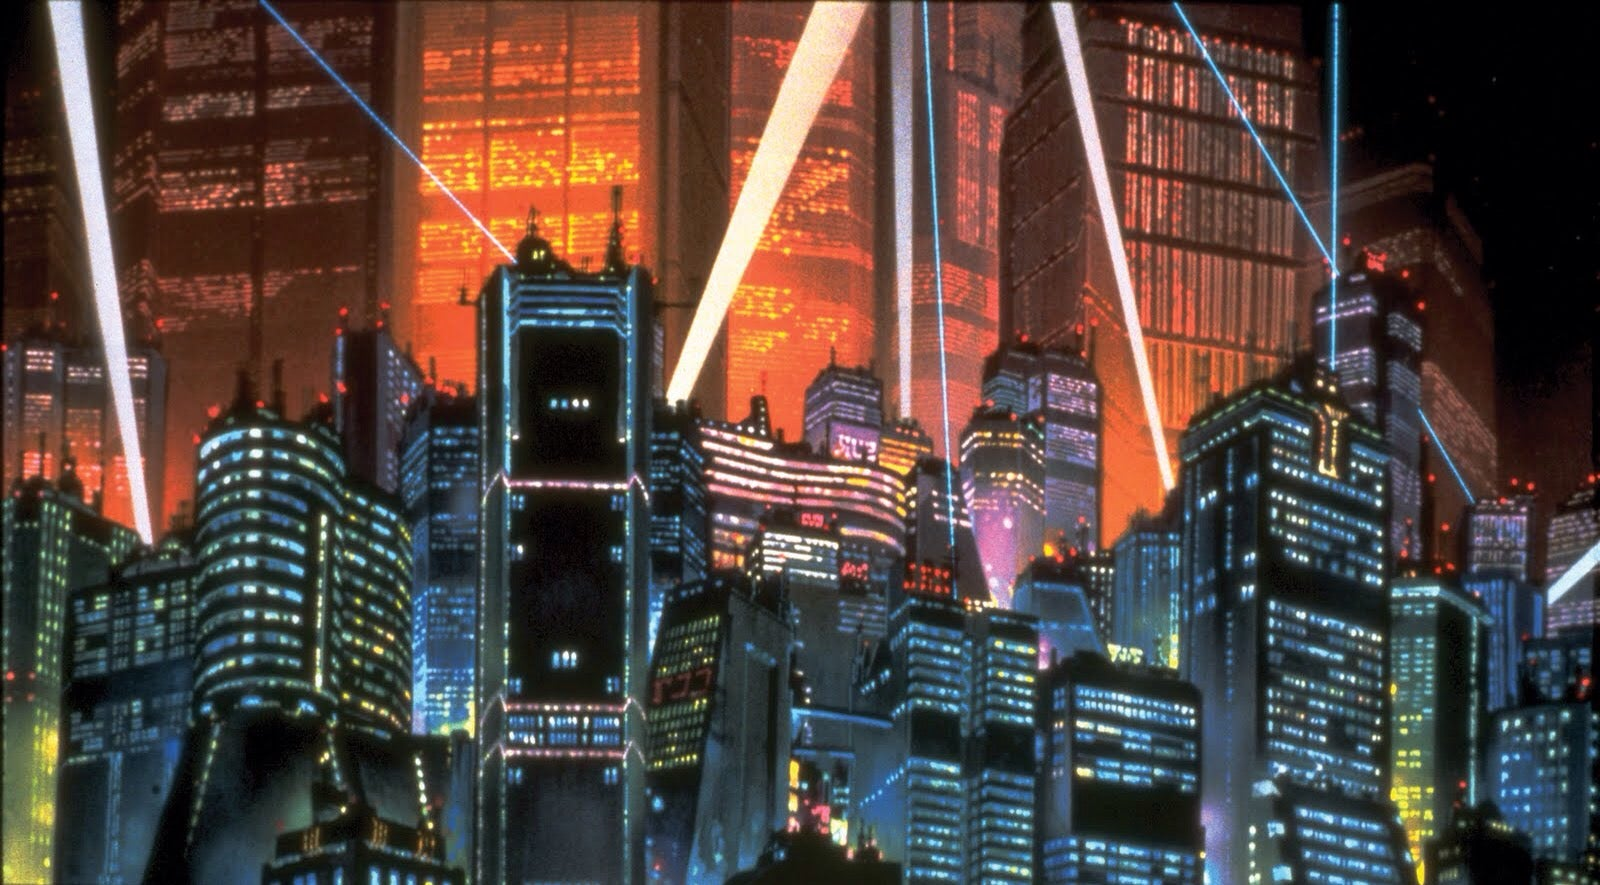 Let's Turn Tokyo Into Anime Land, Says Politician